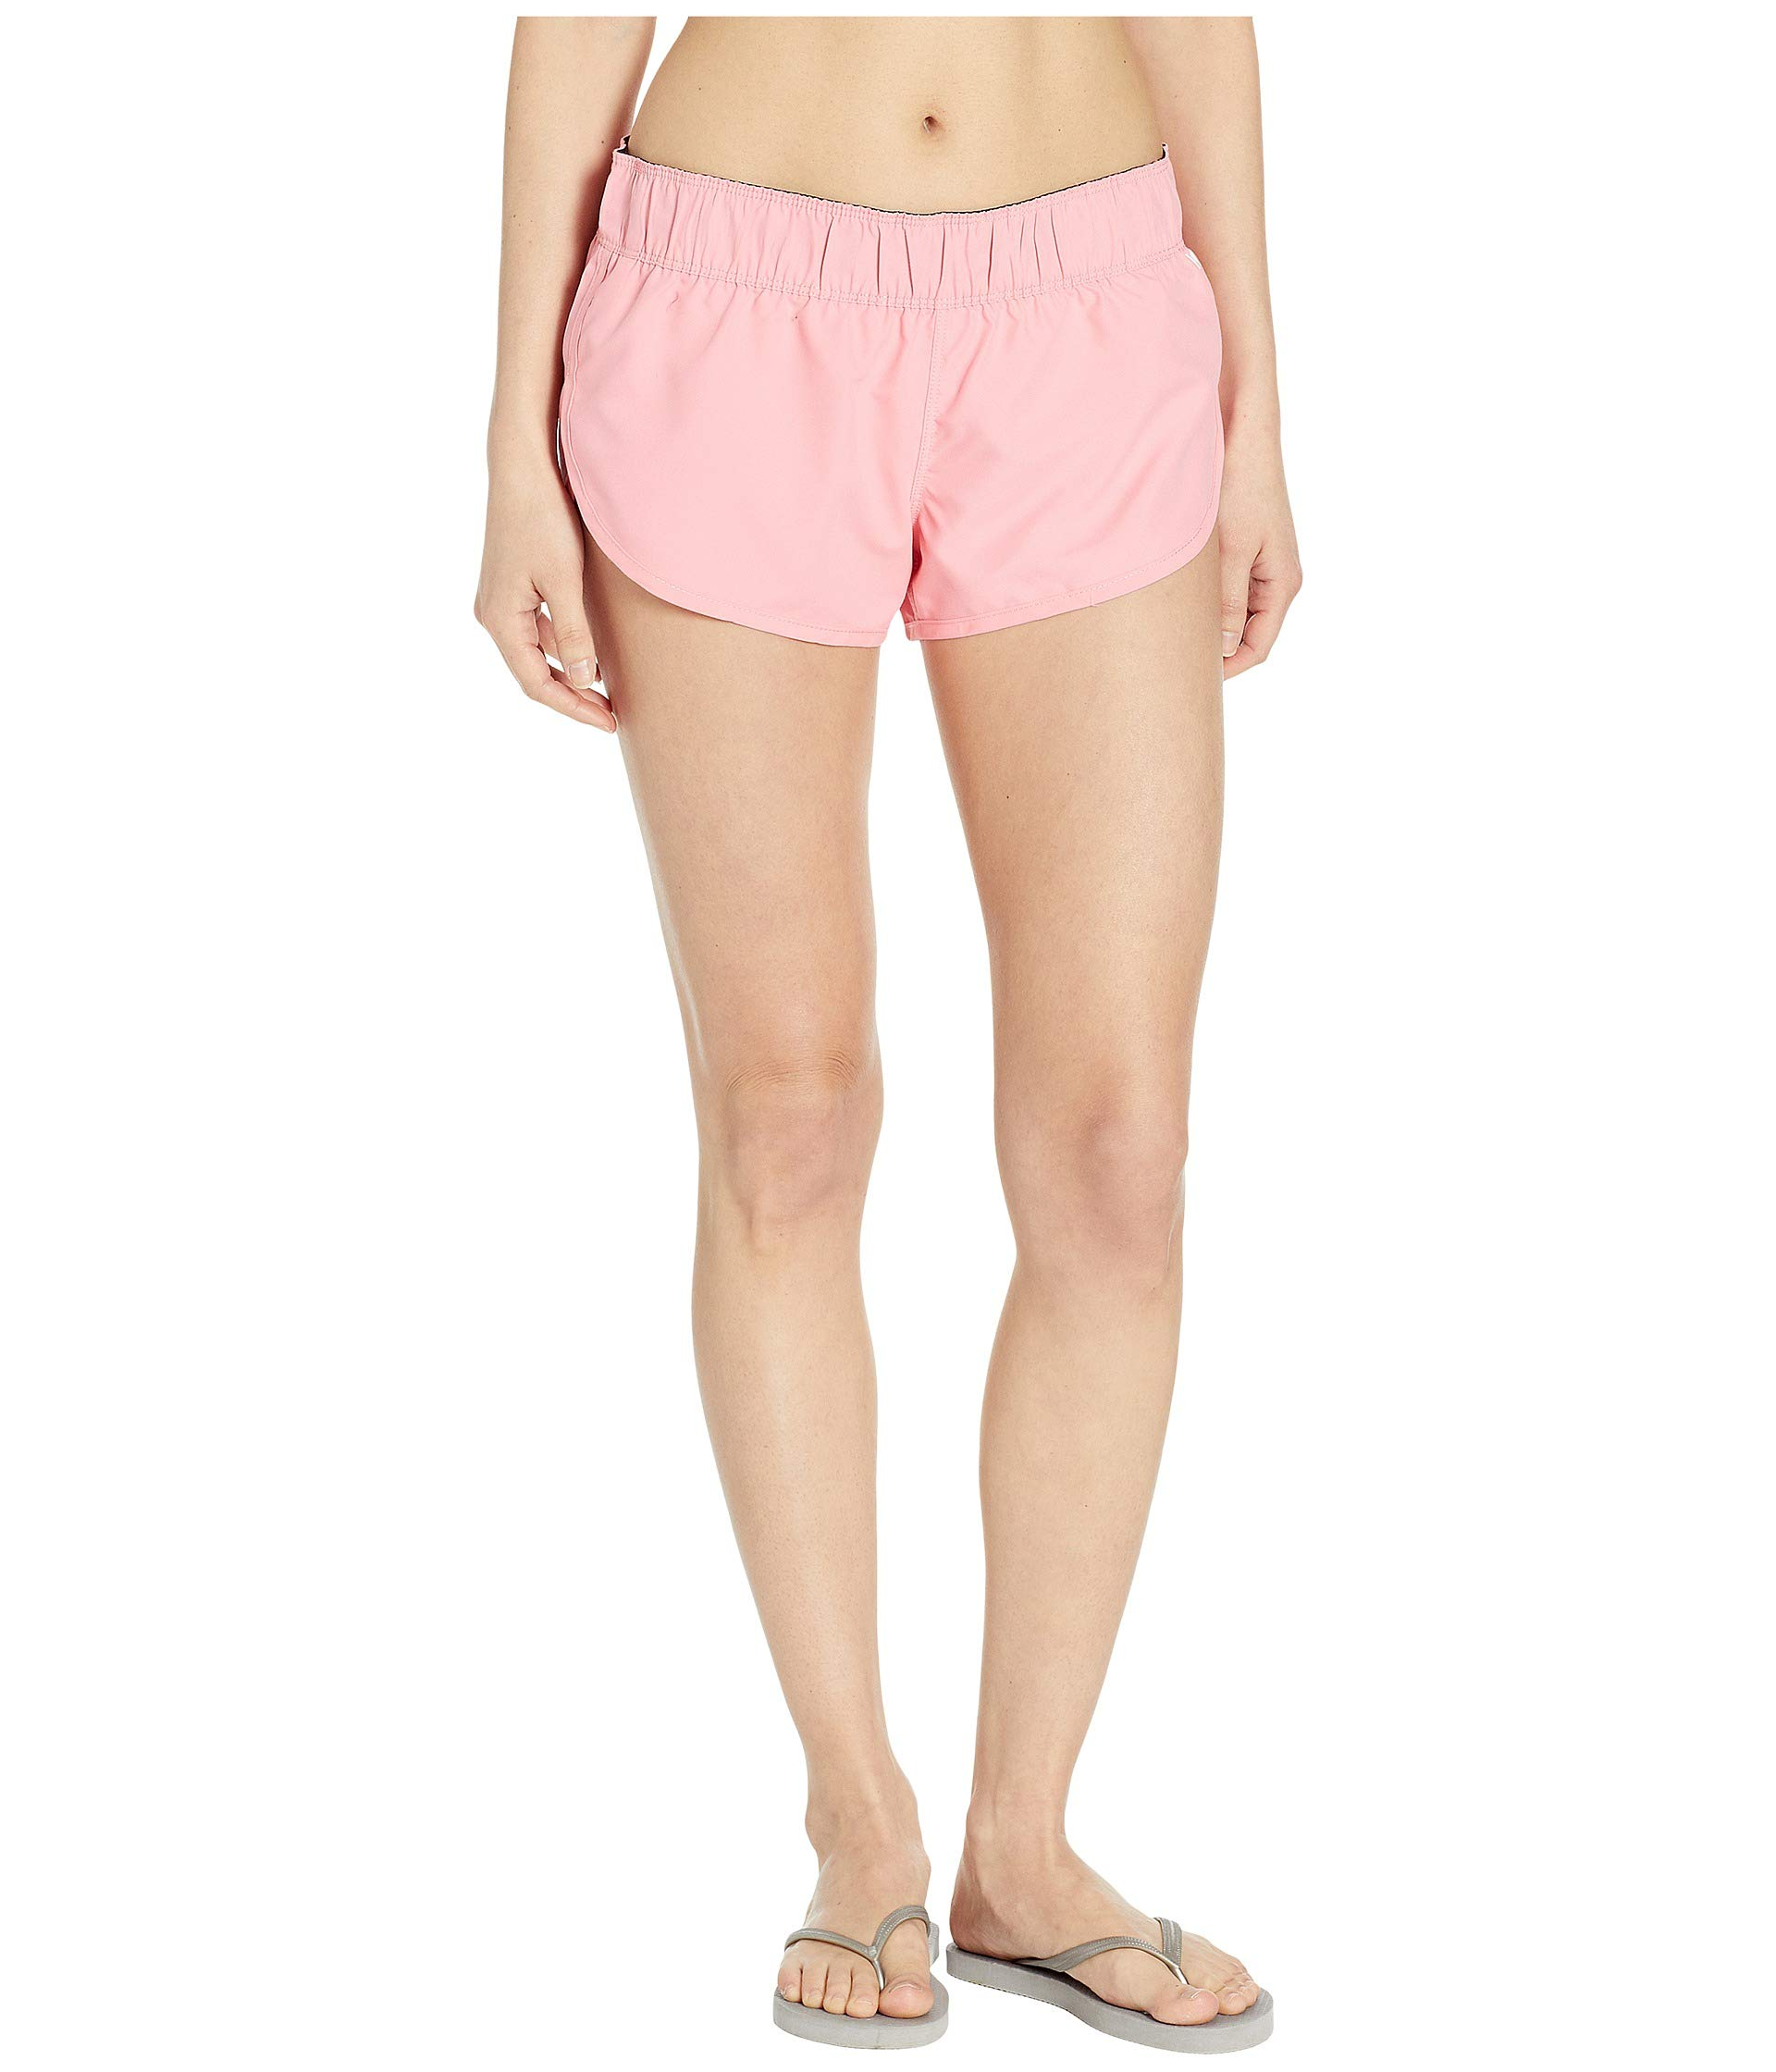 Hurley Women's Apparel Women's Supersuede Beachrider, Pink Gaze, XL by Hurley